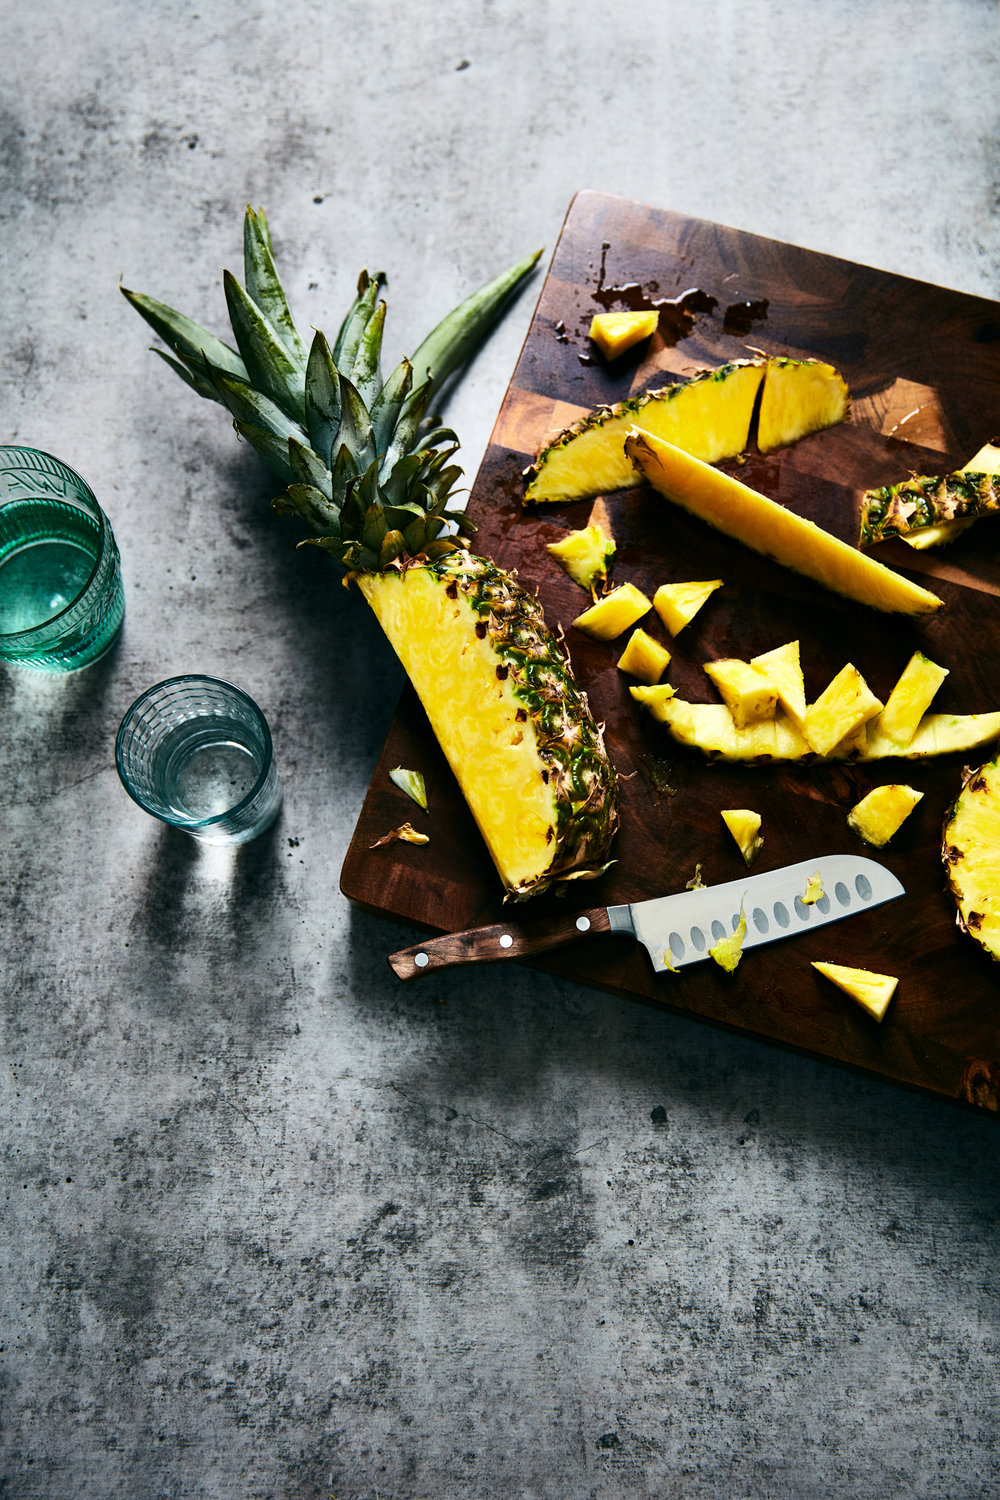 food-pineapple-cut-lesliegrow.jpg